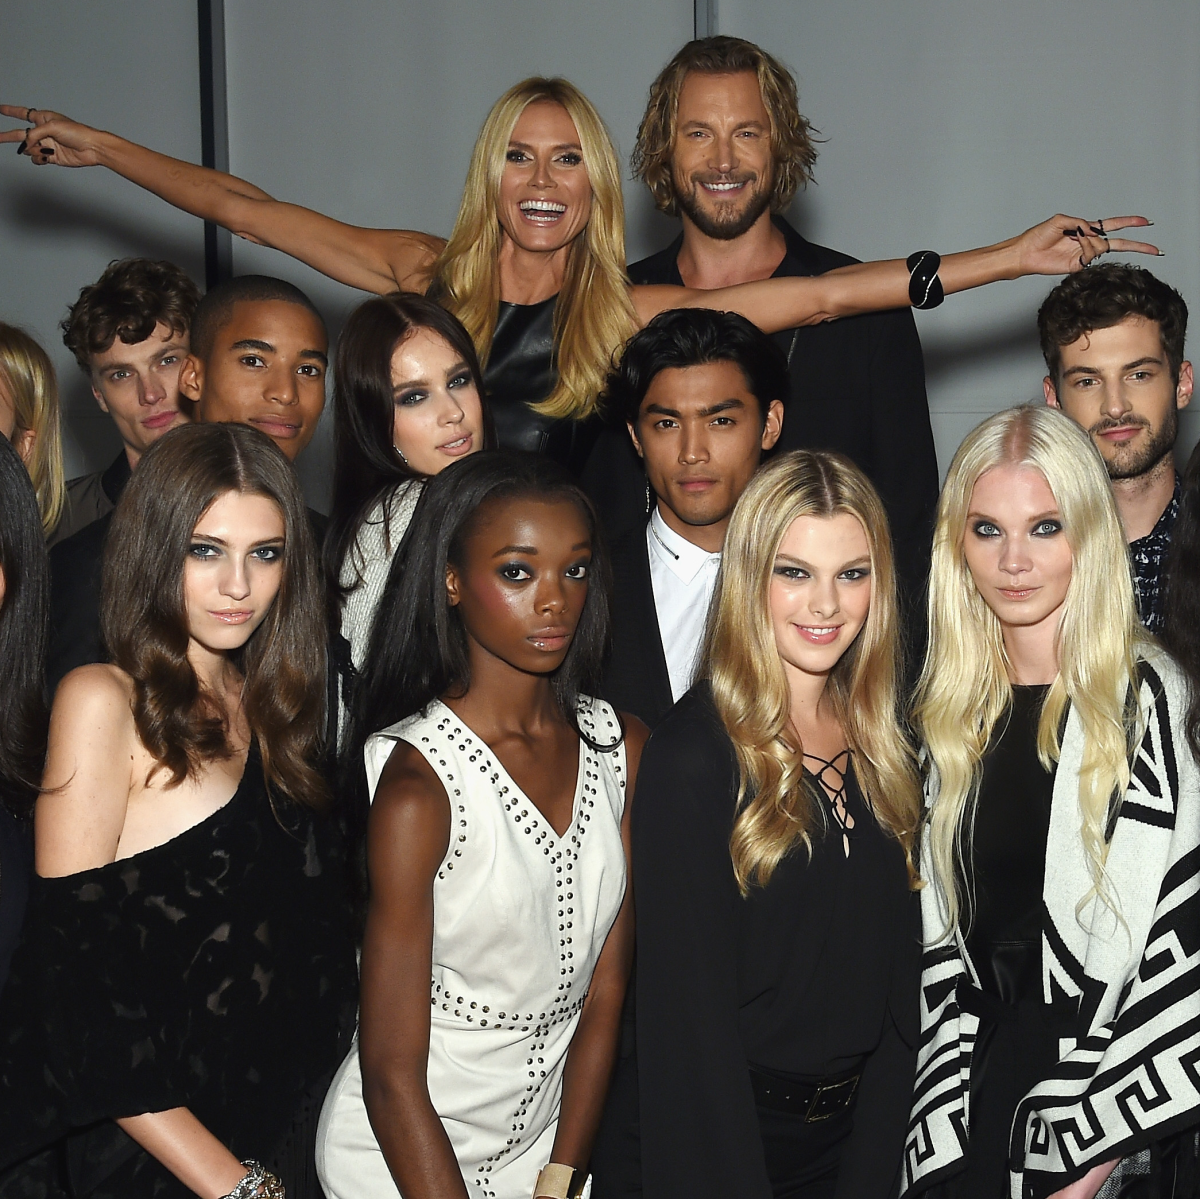 Heidi Klum with models at Macy'c INC party at New York Fashion Week